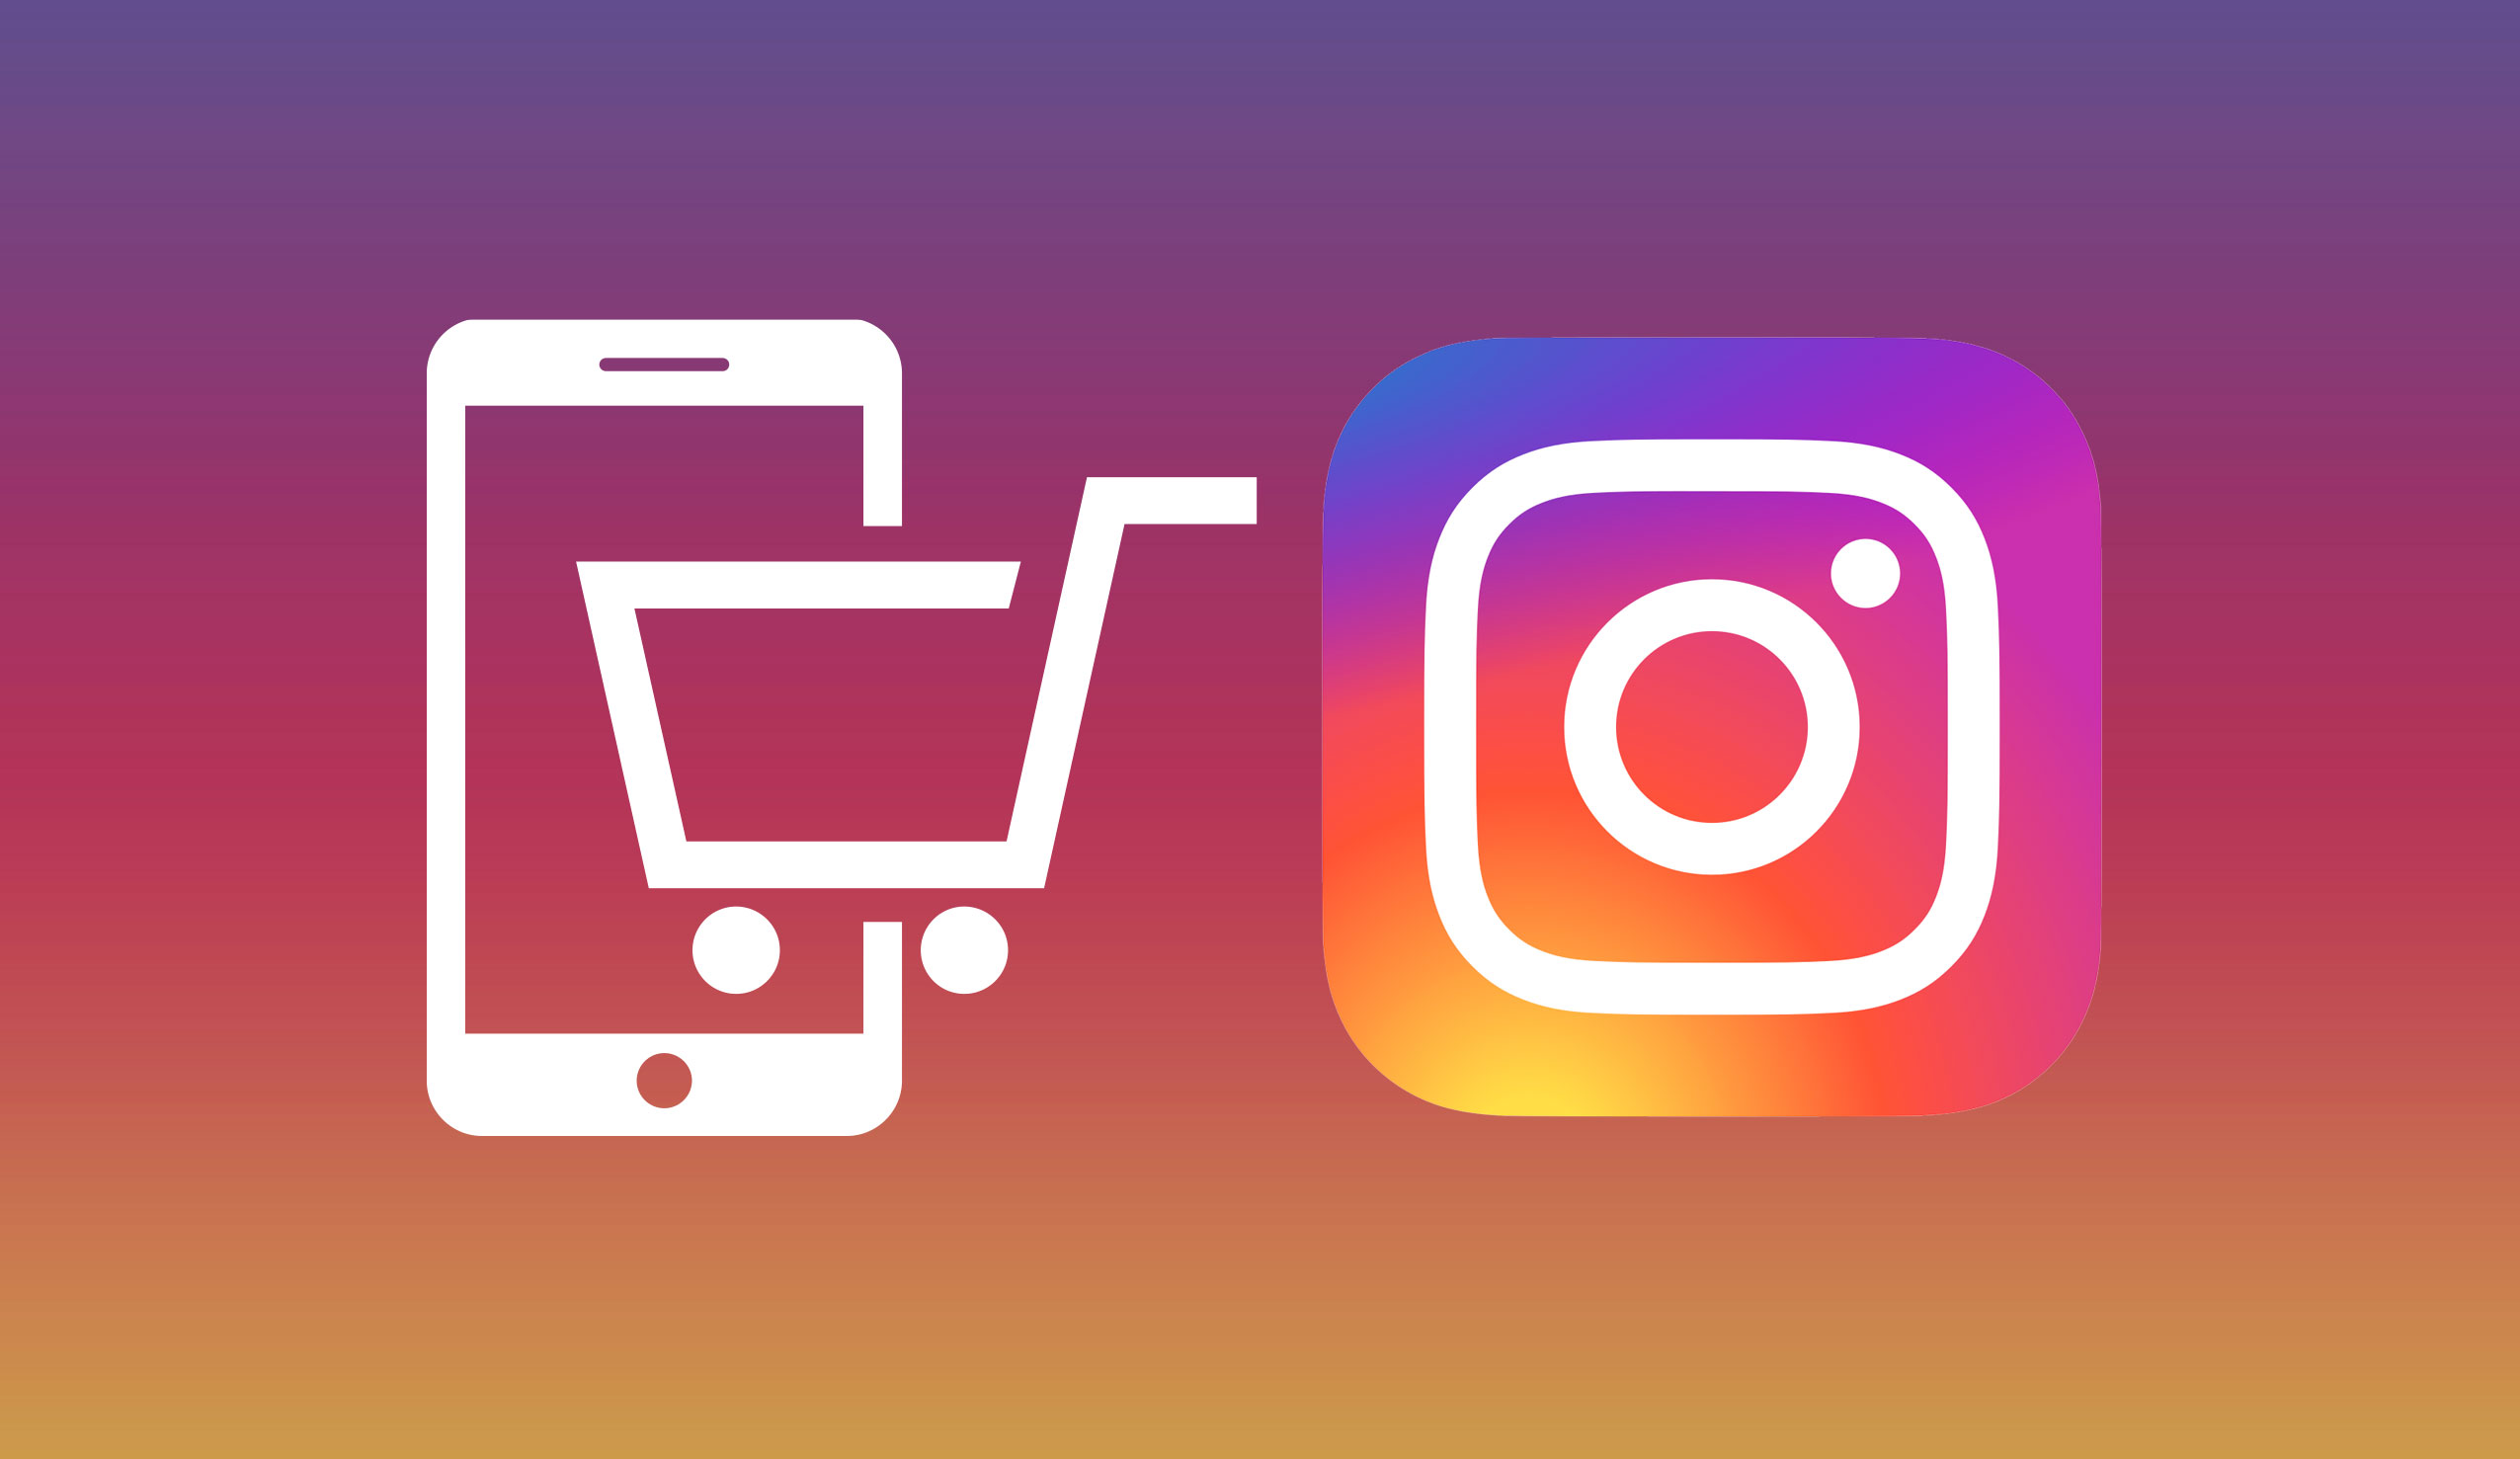 Ecommerce, la funzione Shopping su Facebook ed Instagram